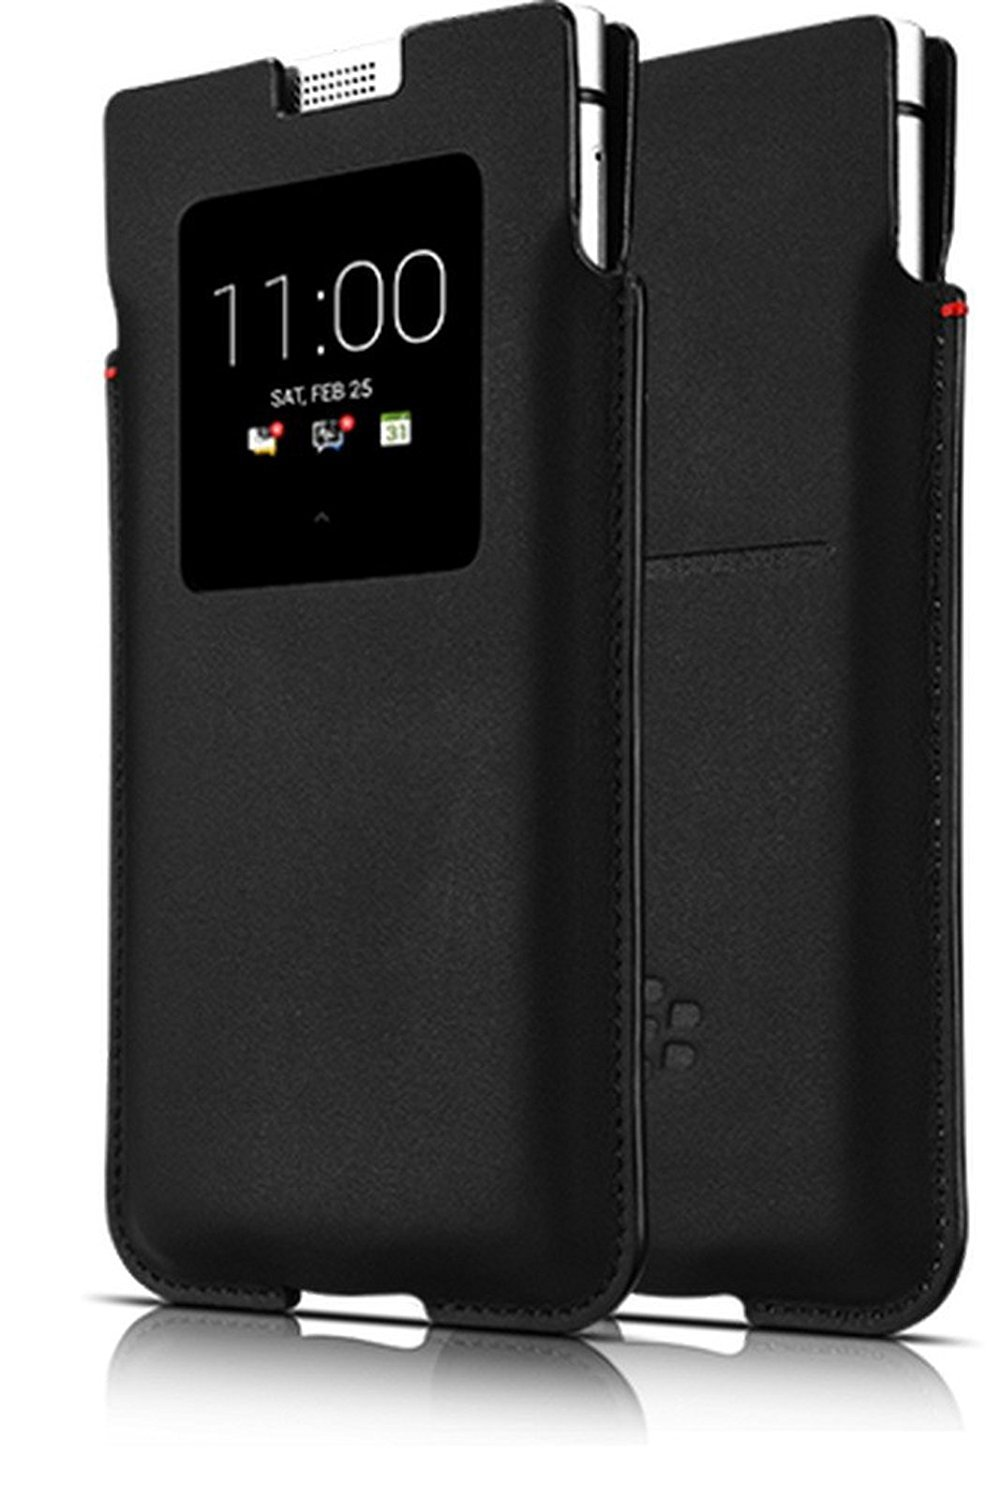 BlackBerry KEYone Smartphone Pocket Sleeve Case